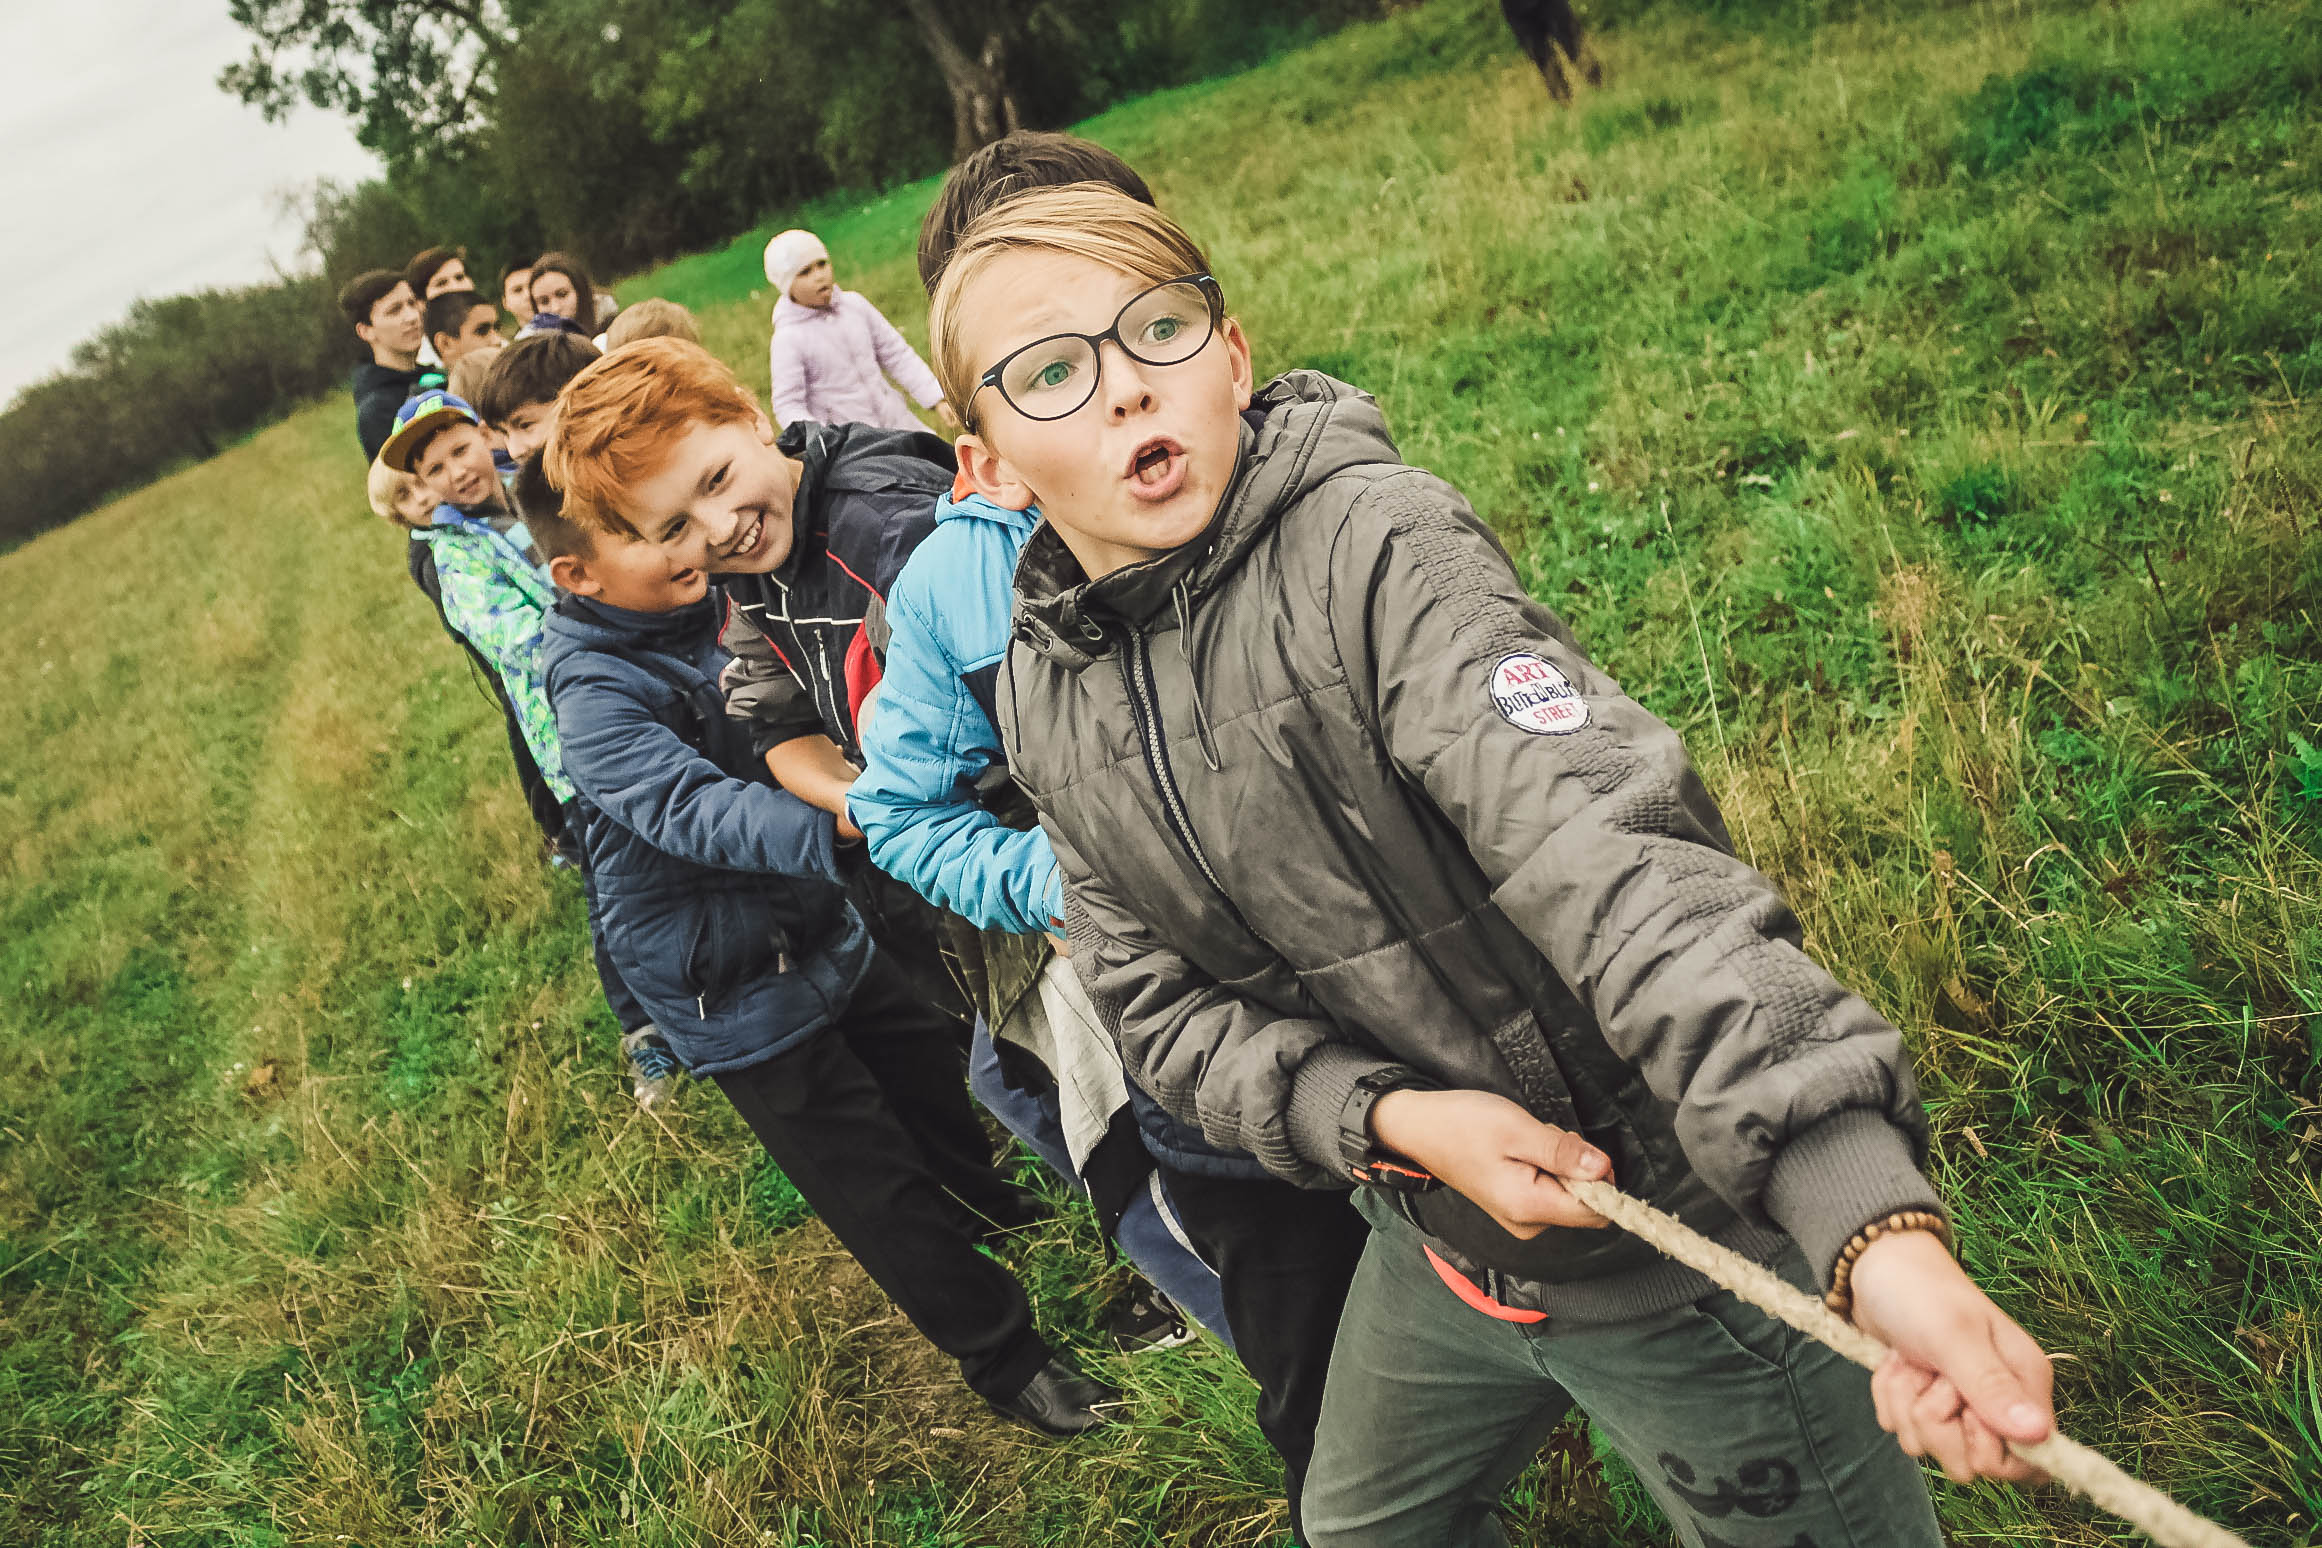 Kids' clubs provide great opportunities for evangelism and discipleship